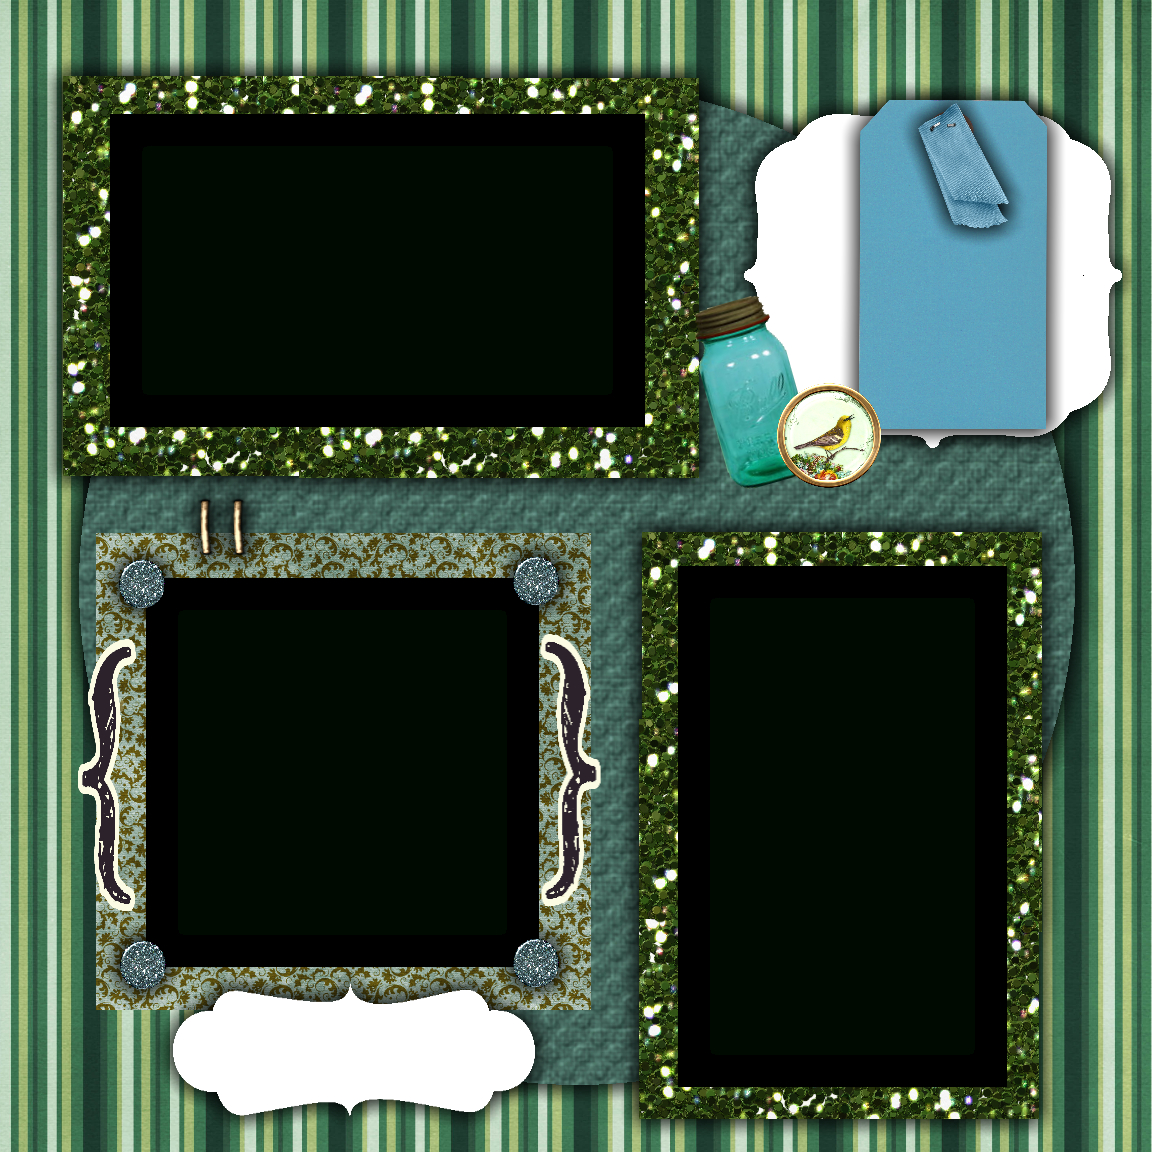 Scrapbook Layouts - Sweetly Scrapped 's Free Printables,digi's And - Free Printable Frames For Scrapbooking